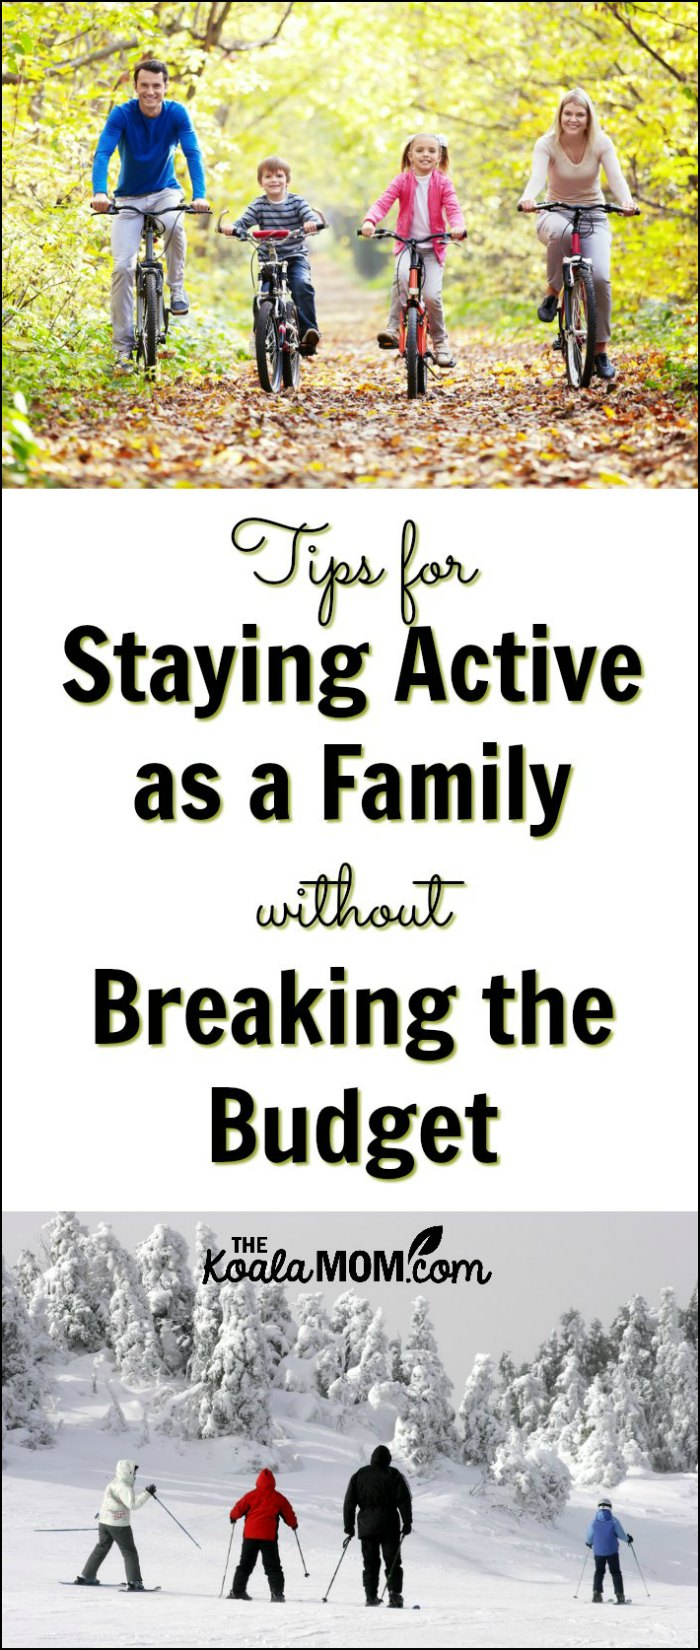 Tips for Staying Active as a Family without Breaking the Budget